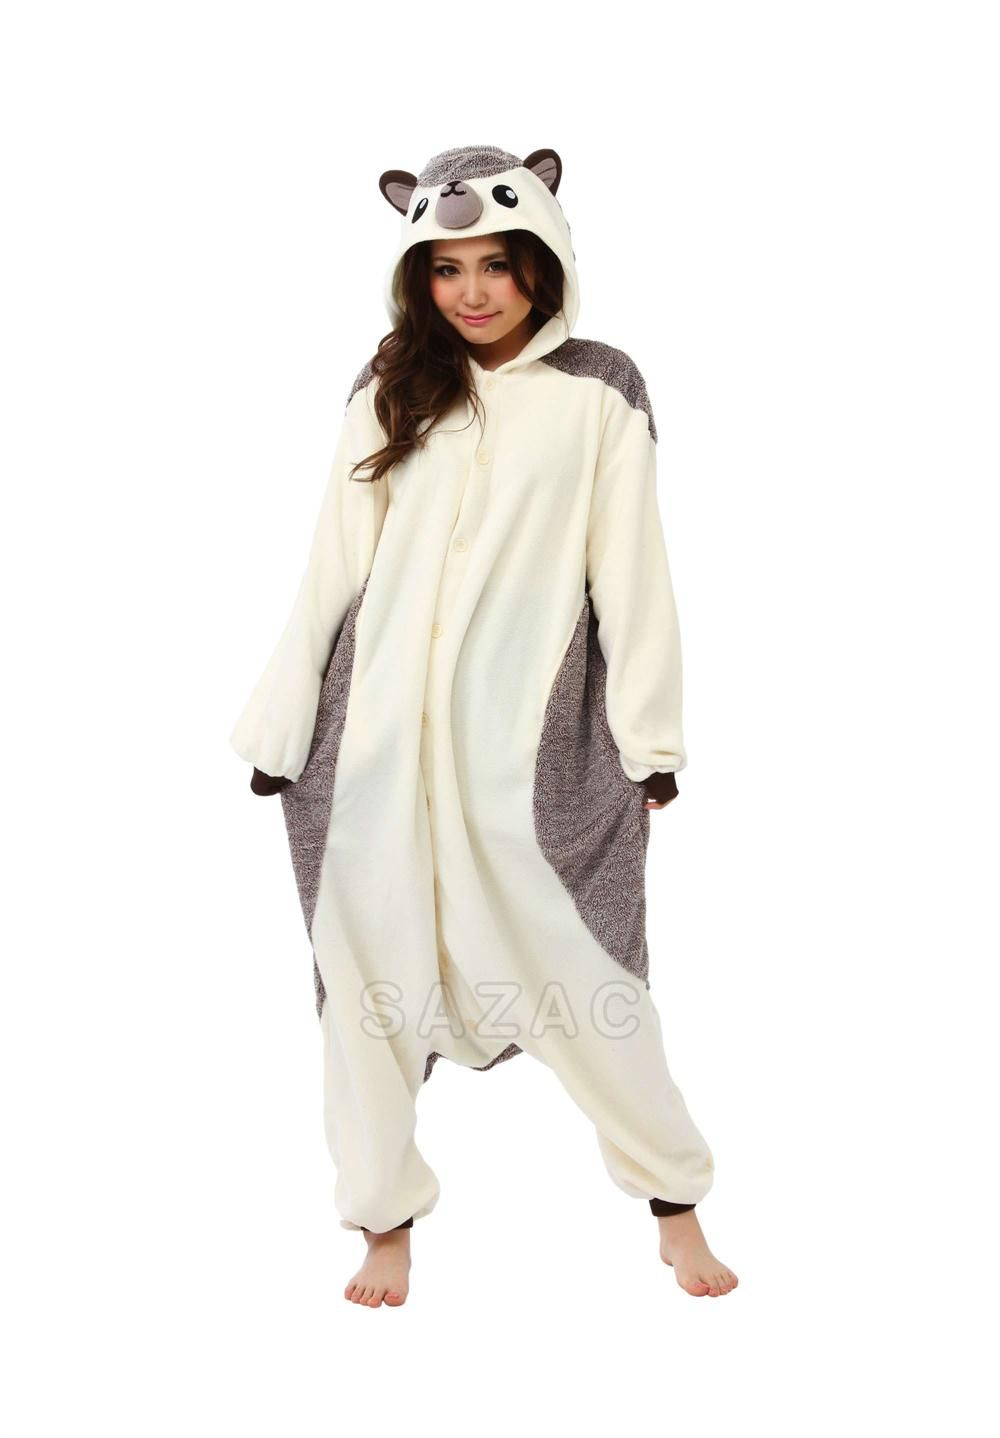 Sazac adult Kigurumi areone size fits most adults. It is just the distance  from one side of the Kigurumi to the other. What is Kigurumi  23b771045